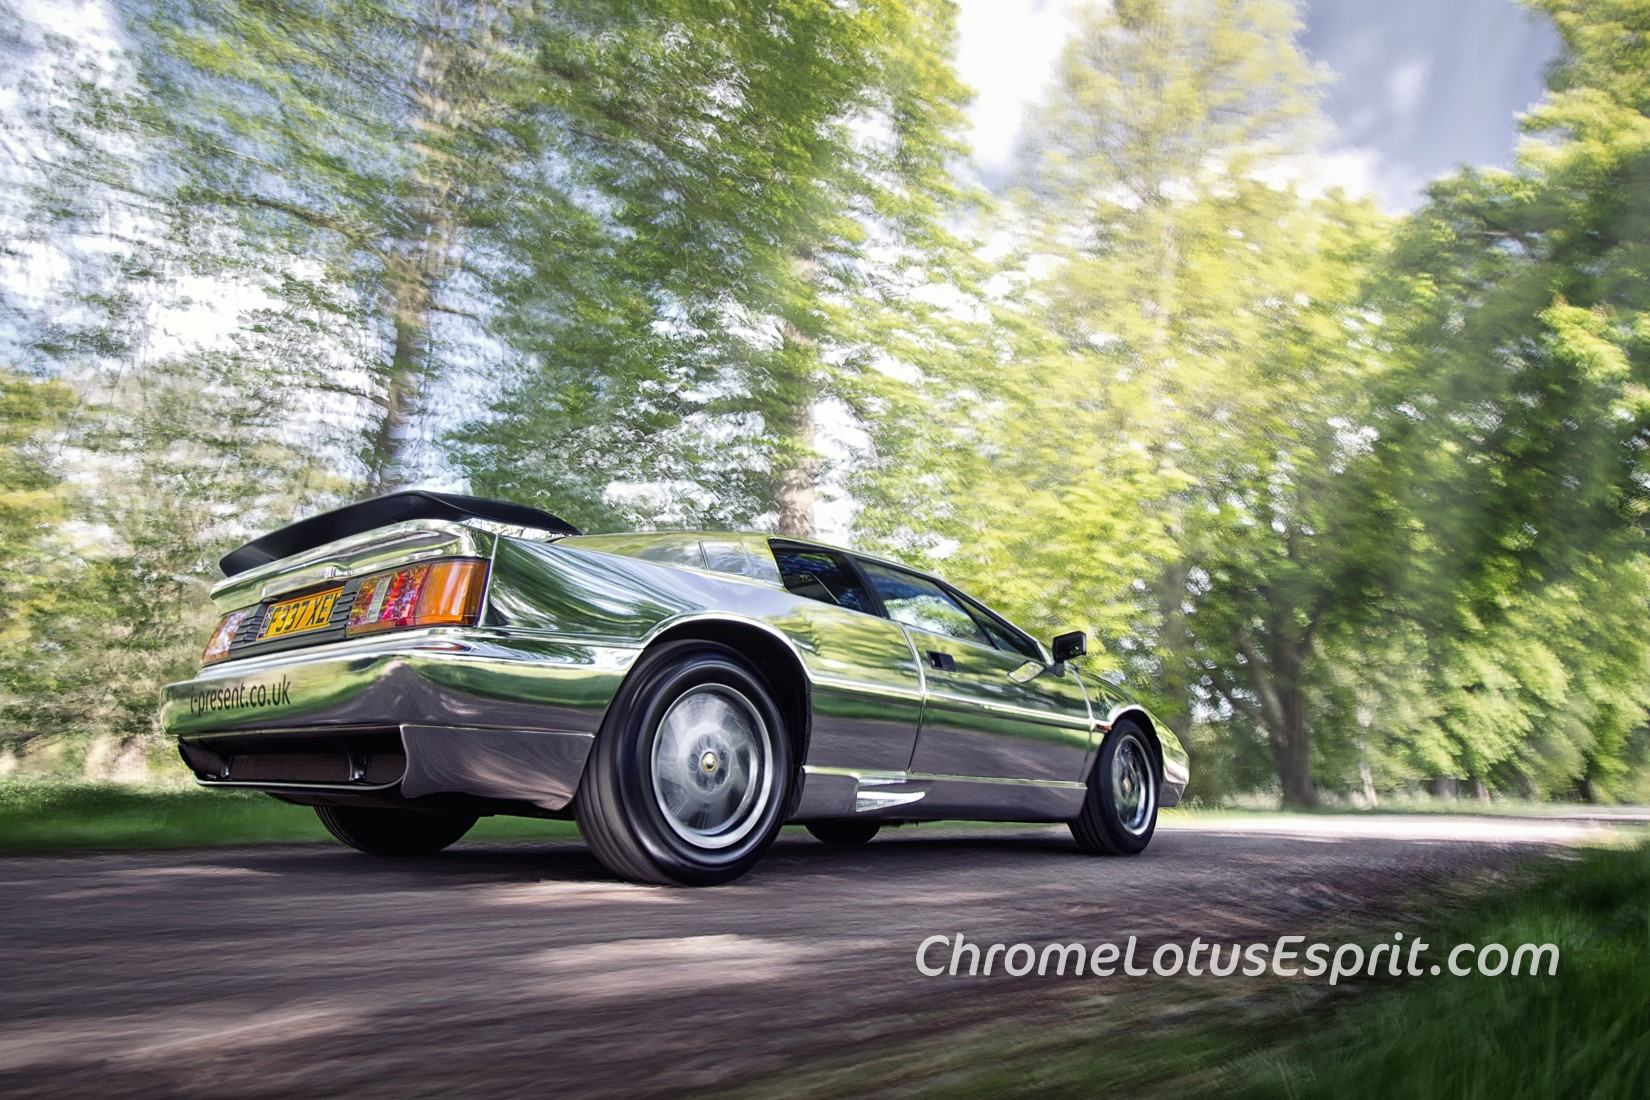 Chrome-Lotus-Esprit-for-sale-01